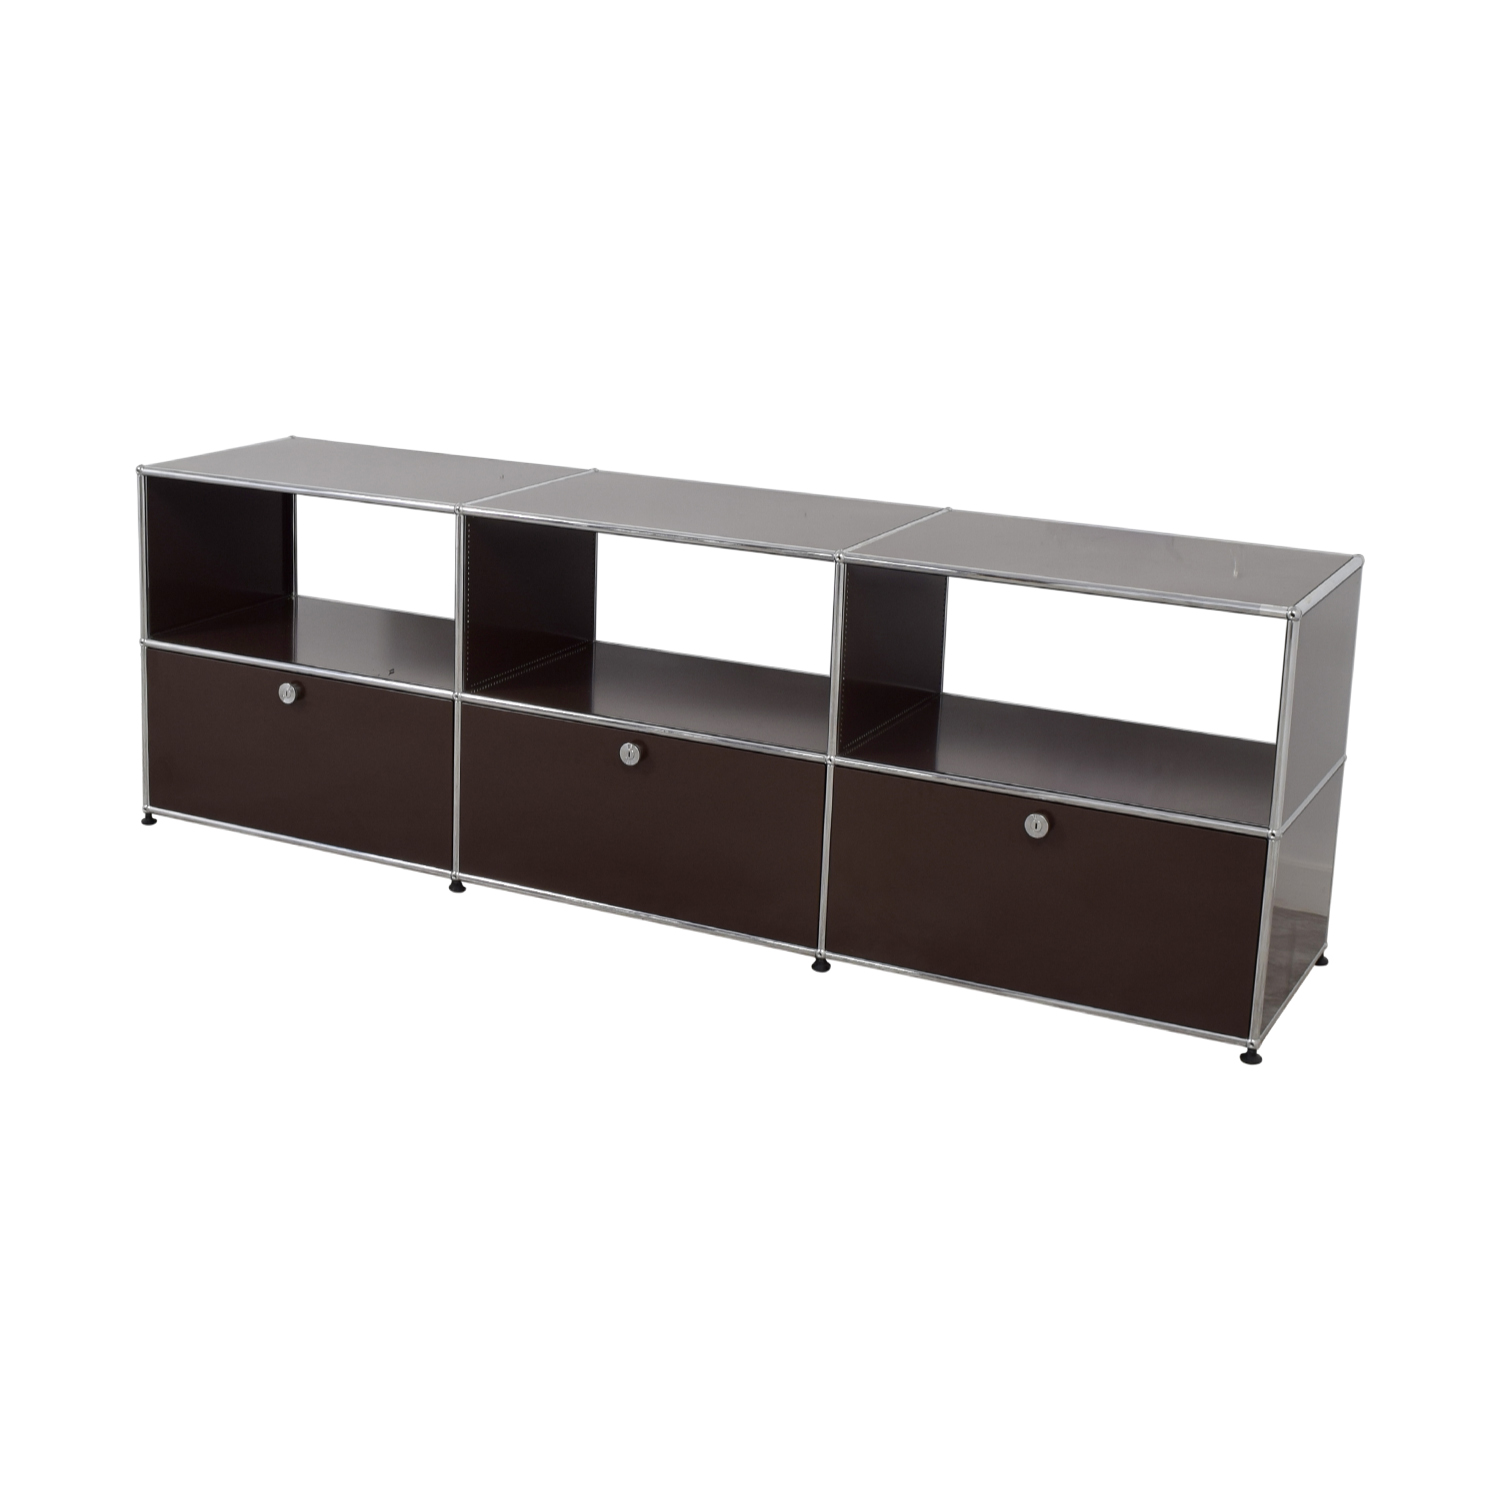 USM USM TV Console with Three-Drawers discount